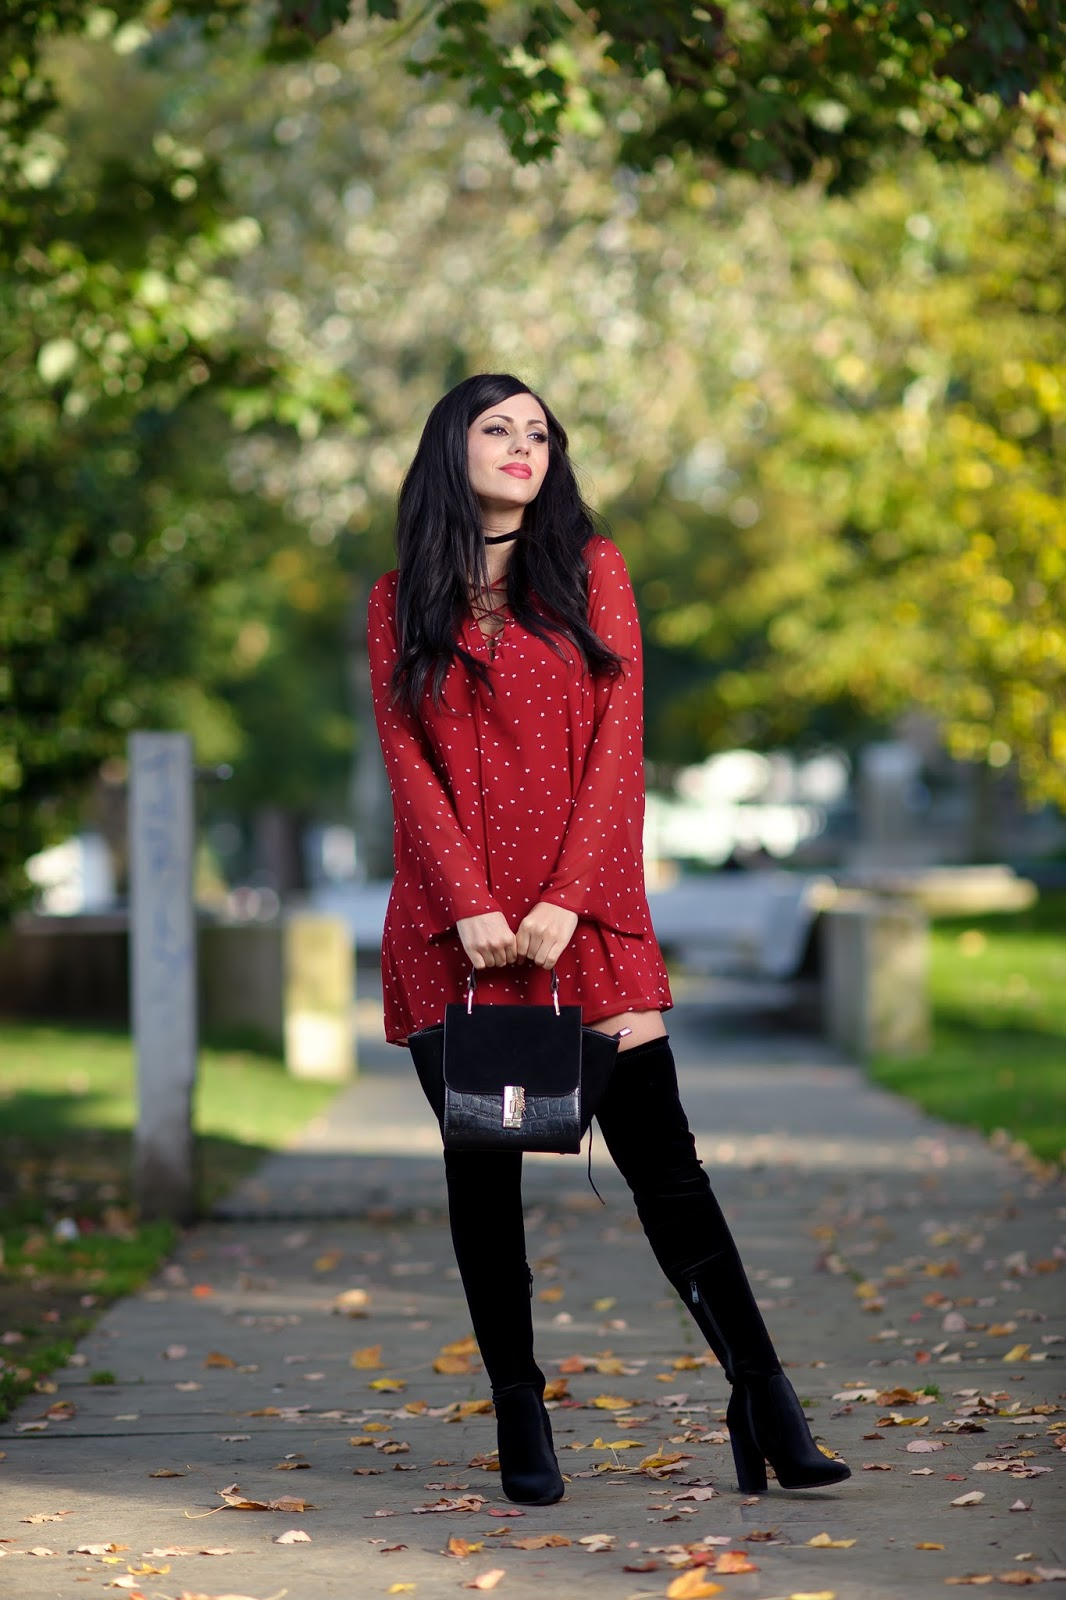 RED DRESS + LONG BOOTS